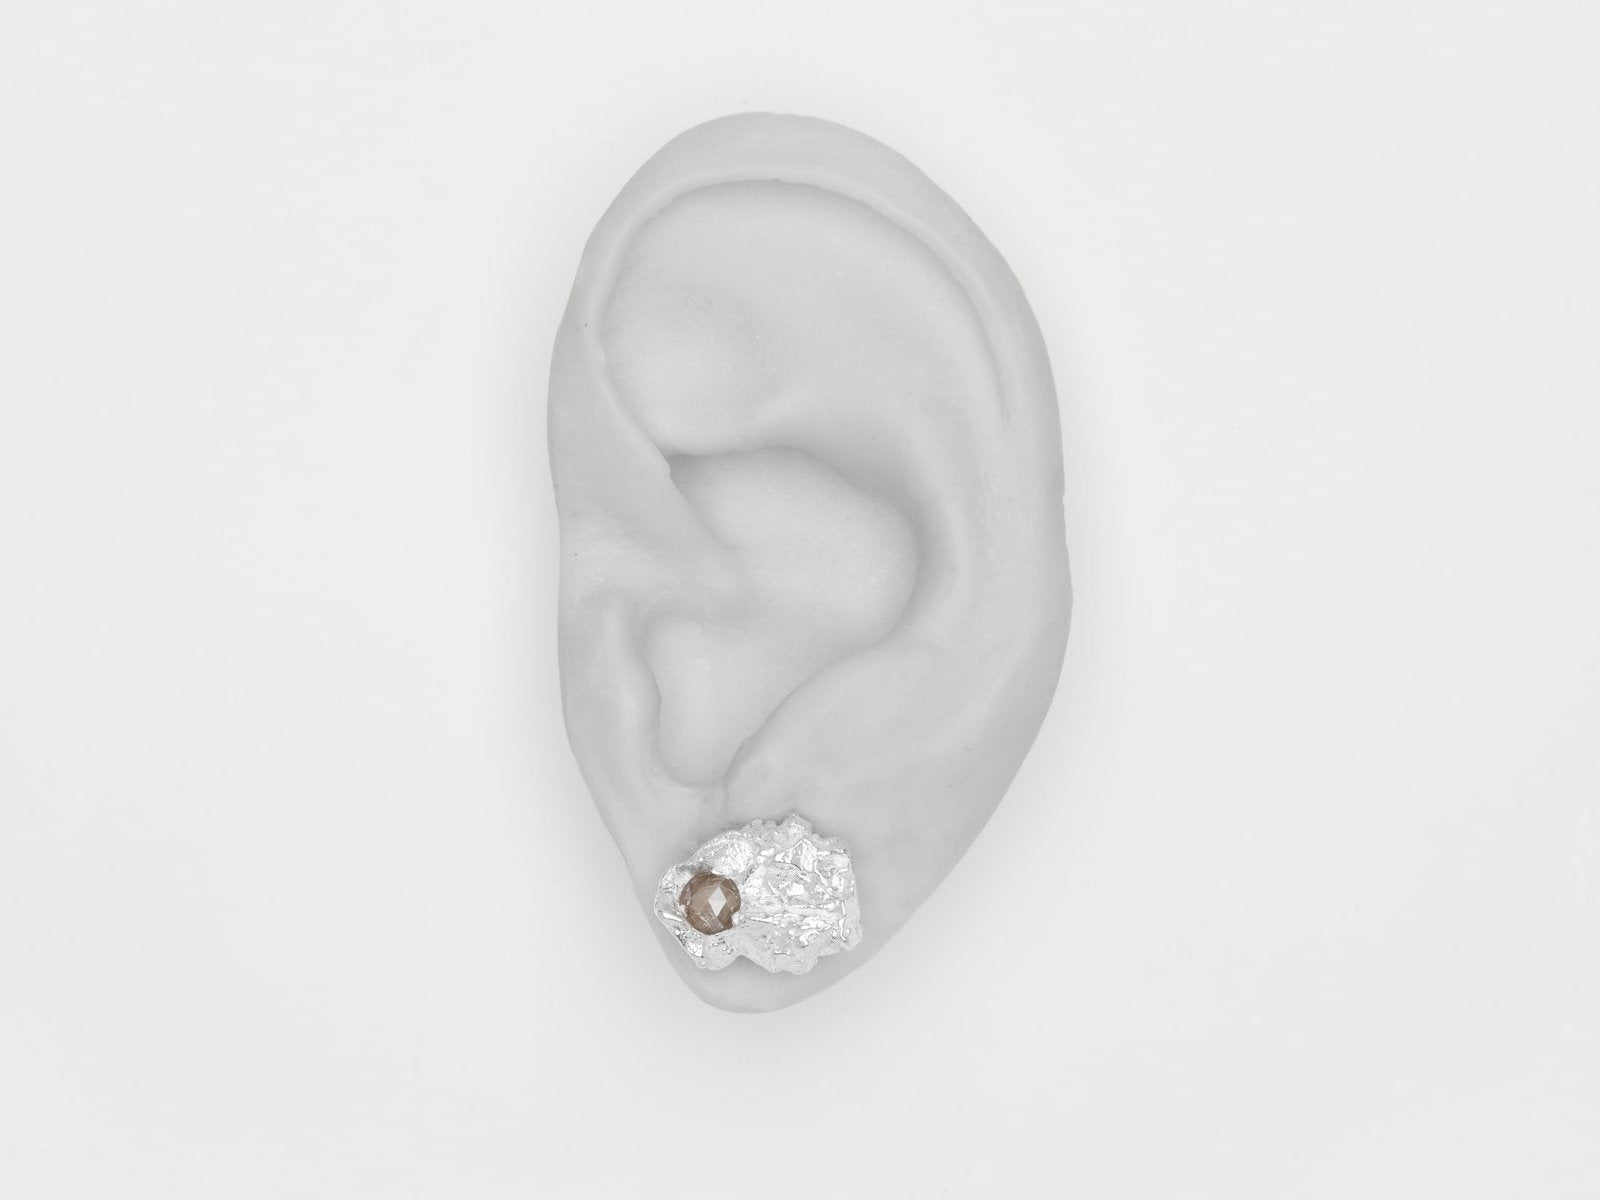 Diamond Rain single earstud (L)